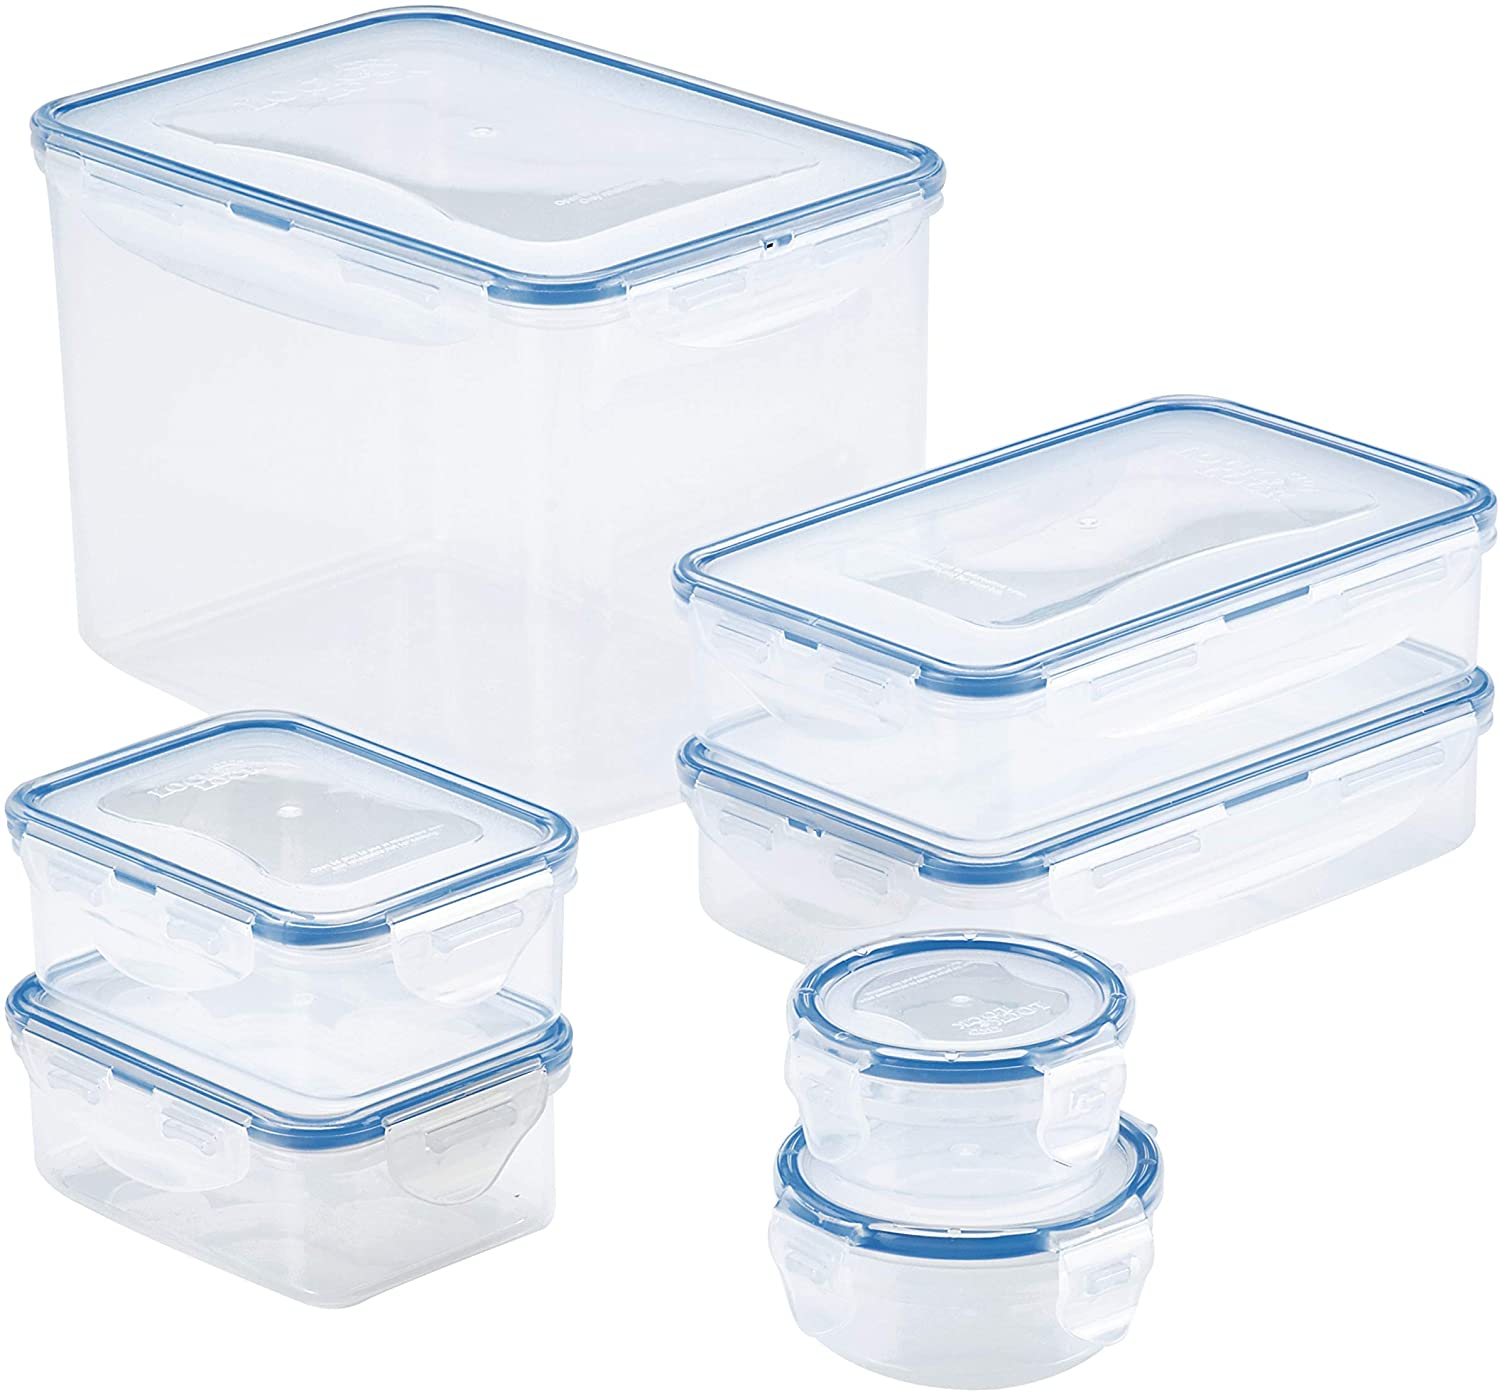 LOCK & LOCK Easy Essentials Food Storage lids/Airtight containers, BPA Free, 14-Piece, Clear